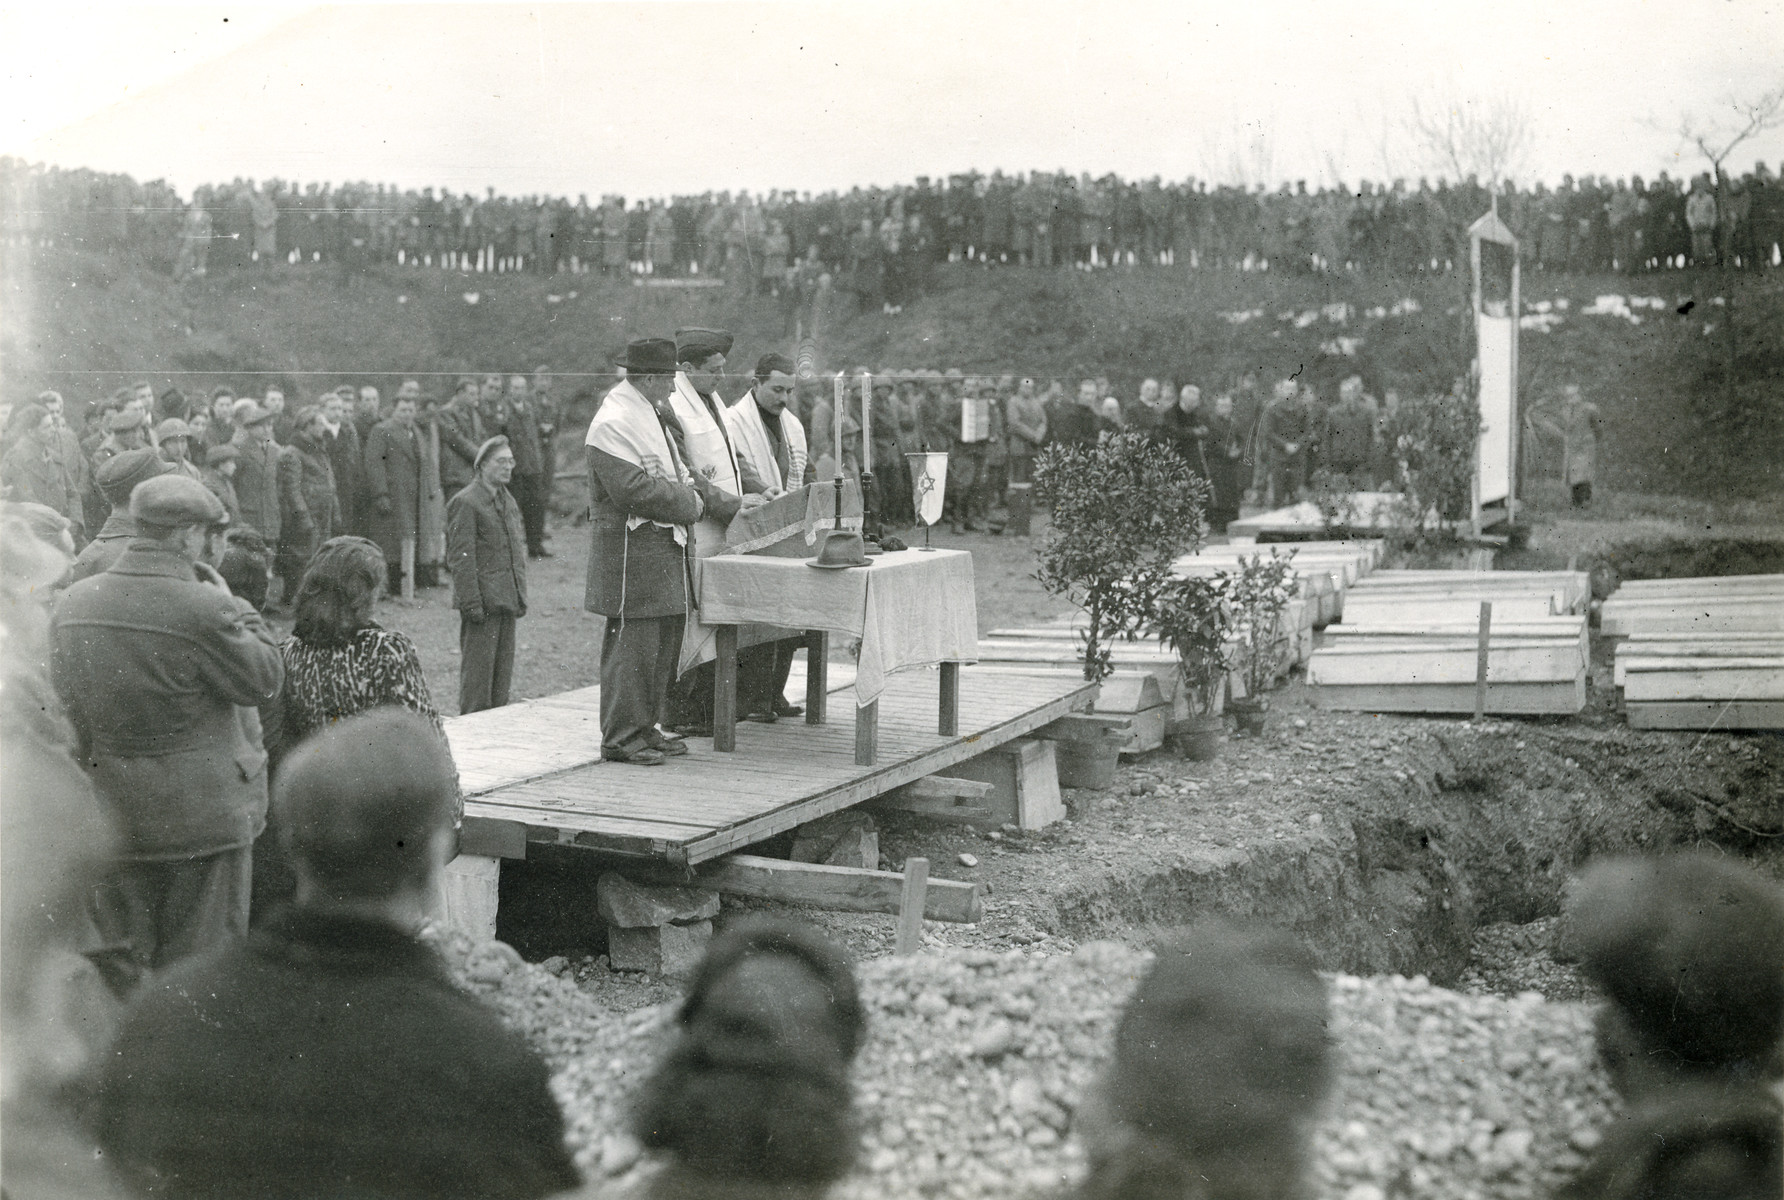 Rabbi Yehuda Lipot Meisels (right) presides over an exhumation and reburial service of the victims of the Pocking concentration camp.